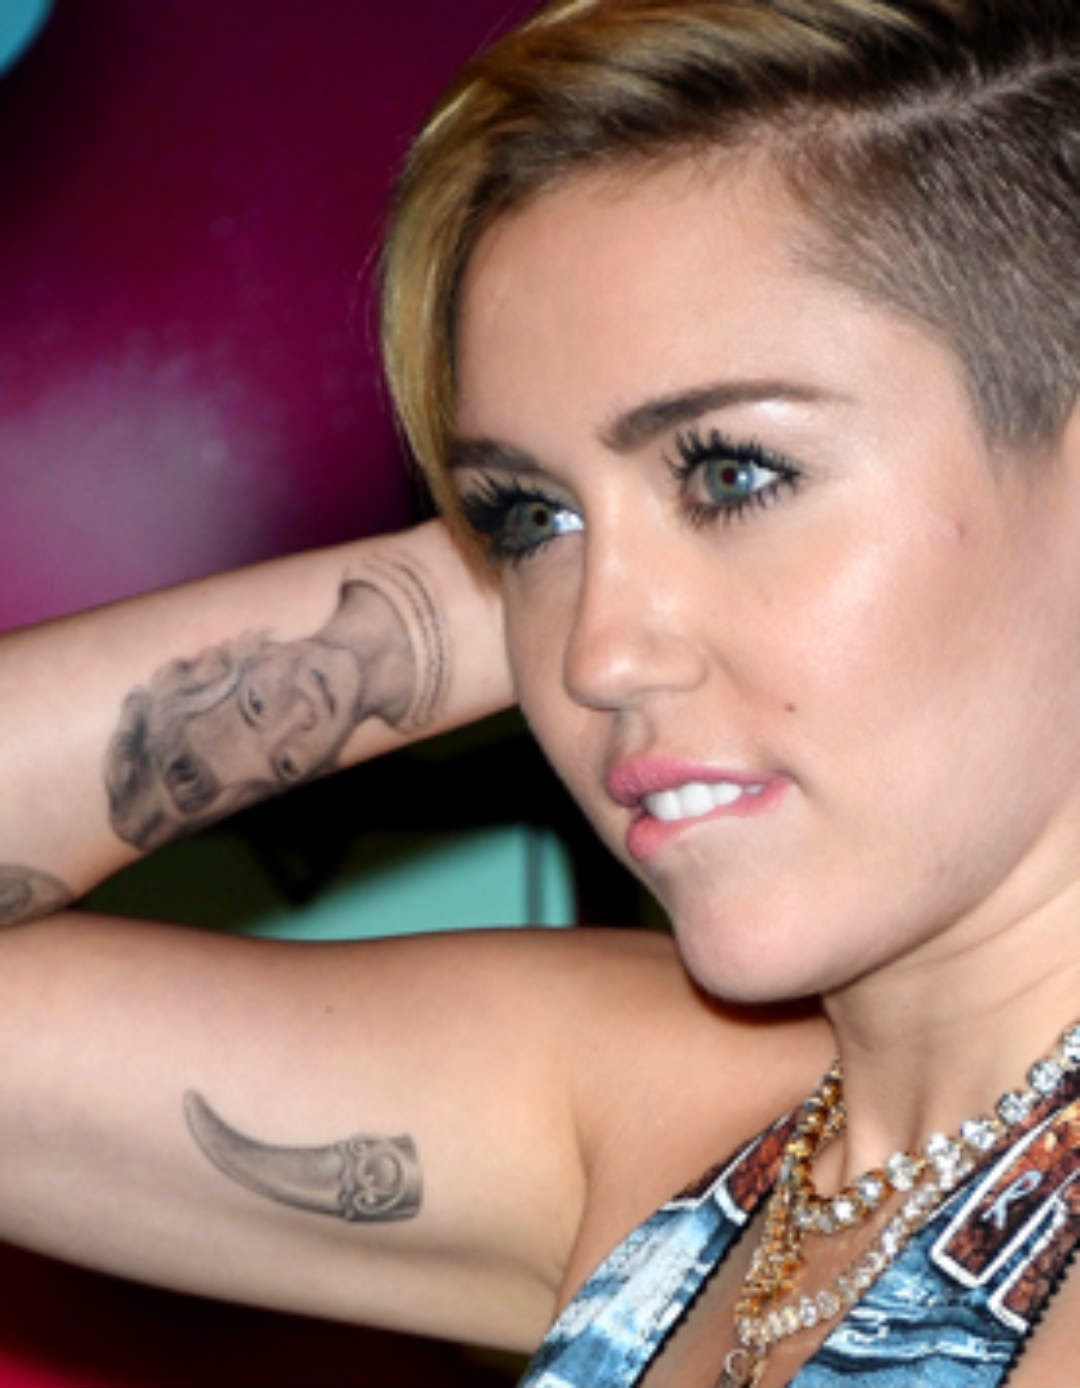 Miley Cyrus Tattoo HD Images -o- | Wallpaper Picture Photo